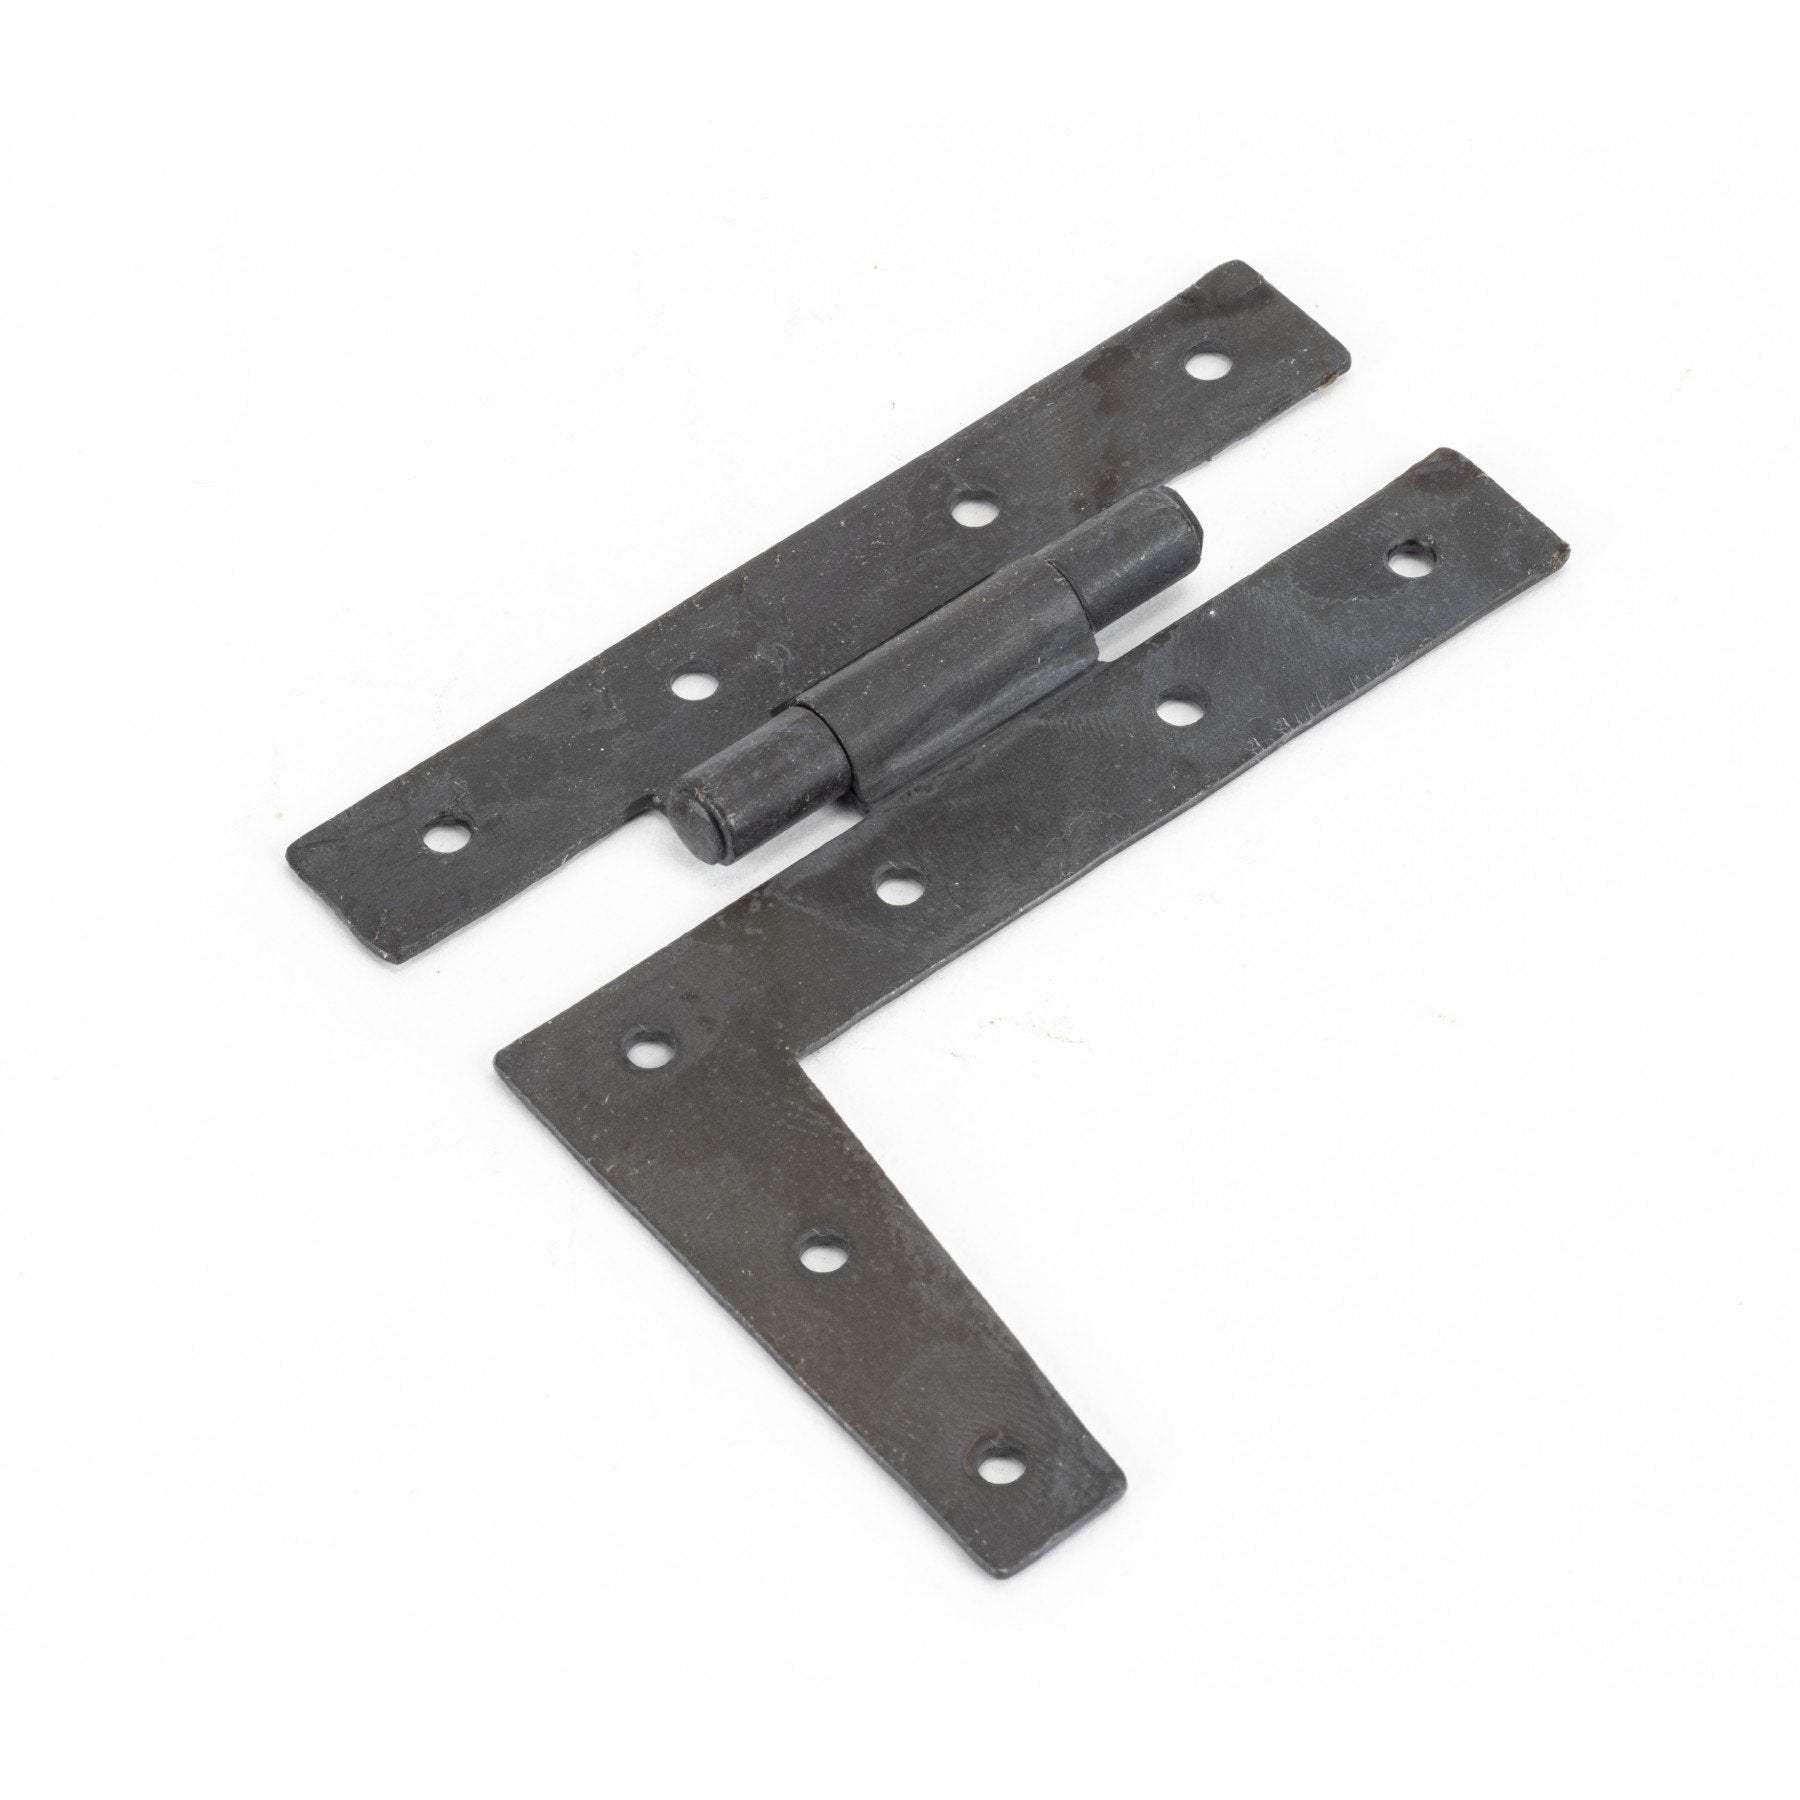 Beeswax 3 1/4'' HL Hinge (pair) - No.42 Interiors